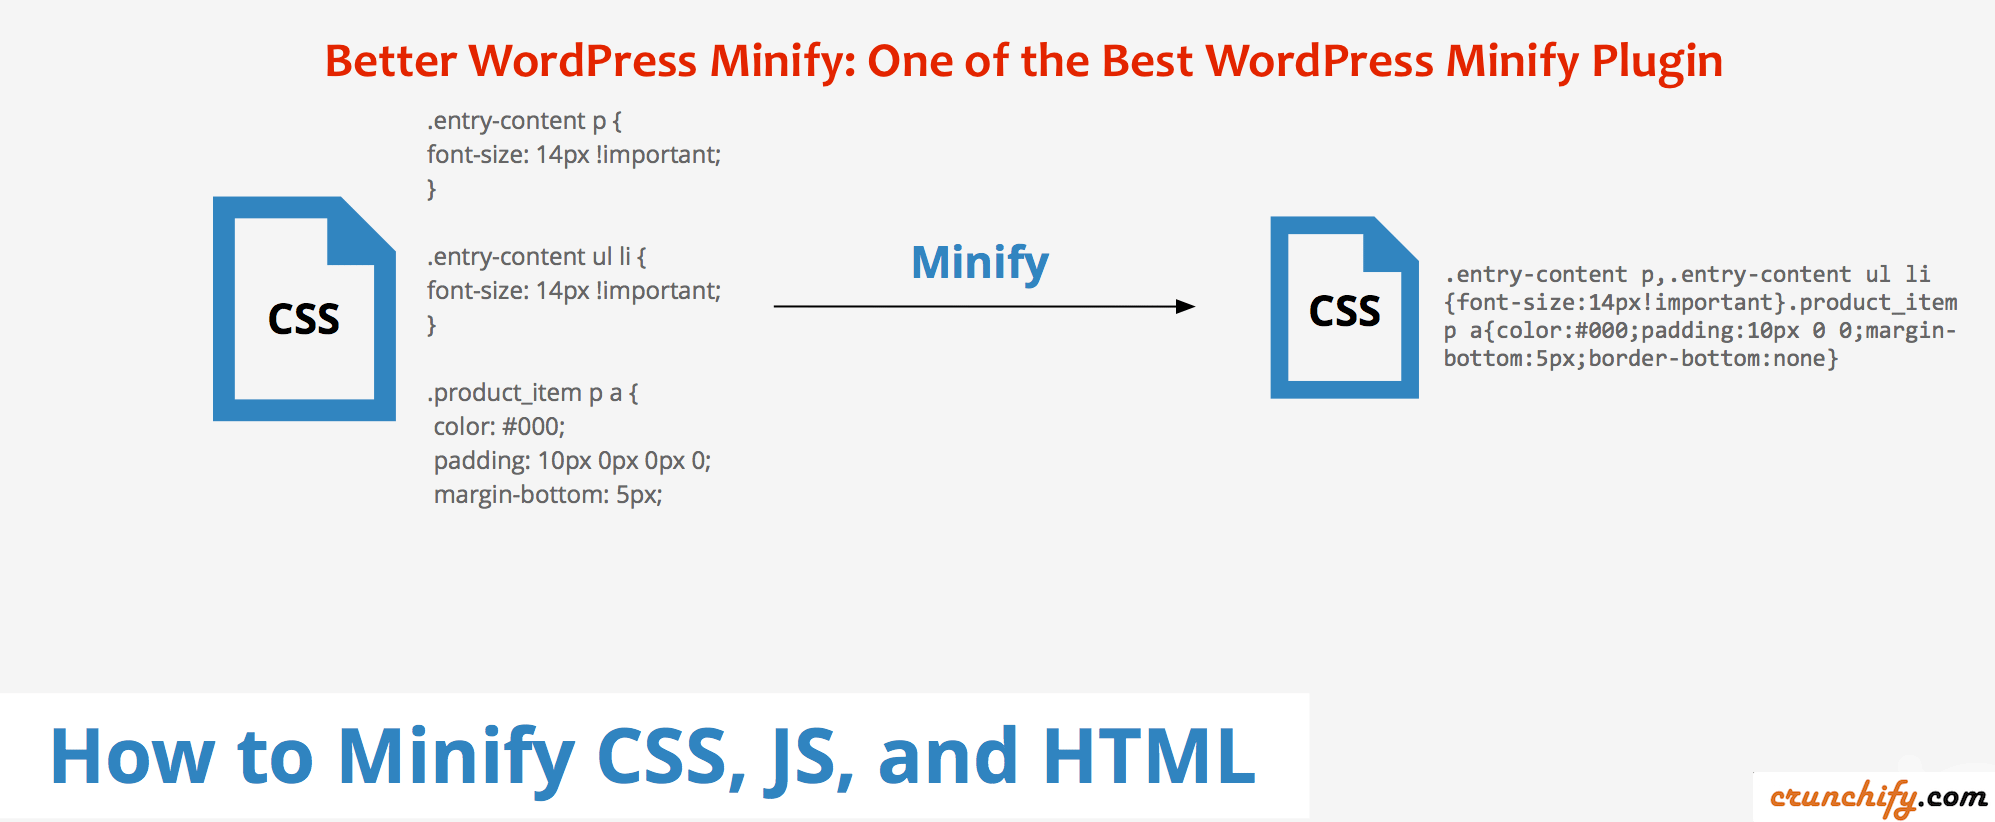 Better WordPress Minify - One of the Best WordPress Minify Plugin - Crunchify Tips